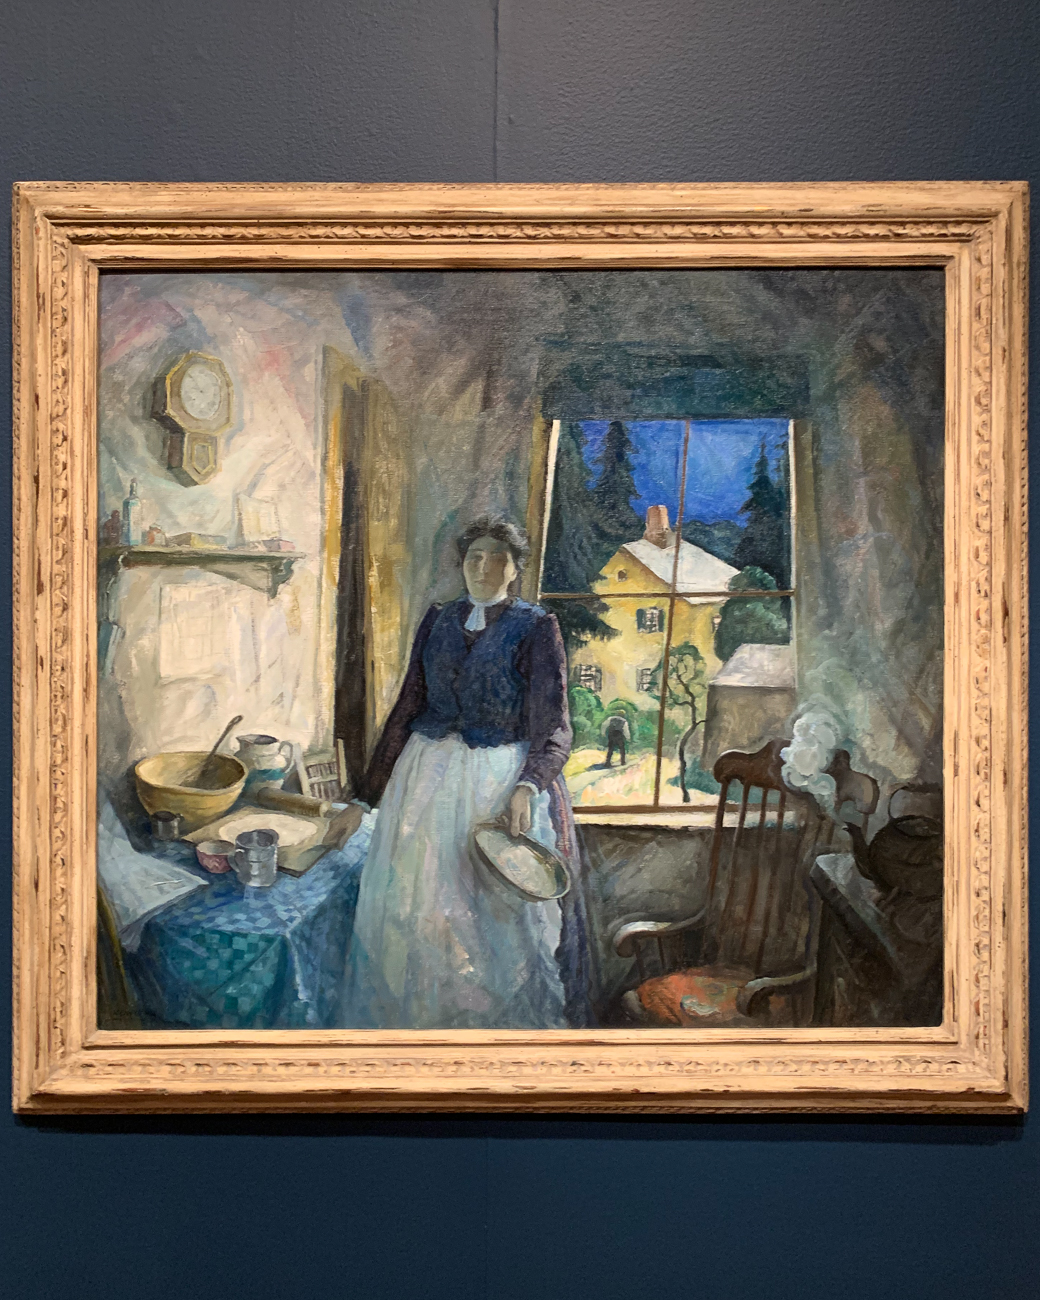 After his parents passed away, Wyeth painted My Mother (1920). In it, his brushstrokes are loose, creating a general haziness to the piece. One interpretation of this style is that Wyeth intended to paint a memory, which is never perfectly clear. The light coming in from the window highlights the clock on the wall, perhaps giving the viewer a sense of passing time. / Image: Phil Armstrong, Cincinnati Refined // Published: 2.9.20